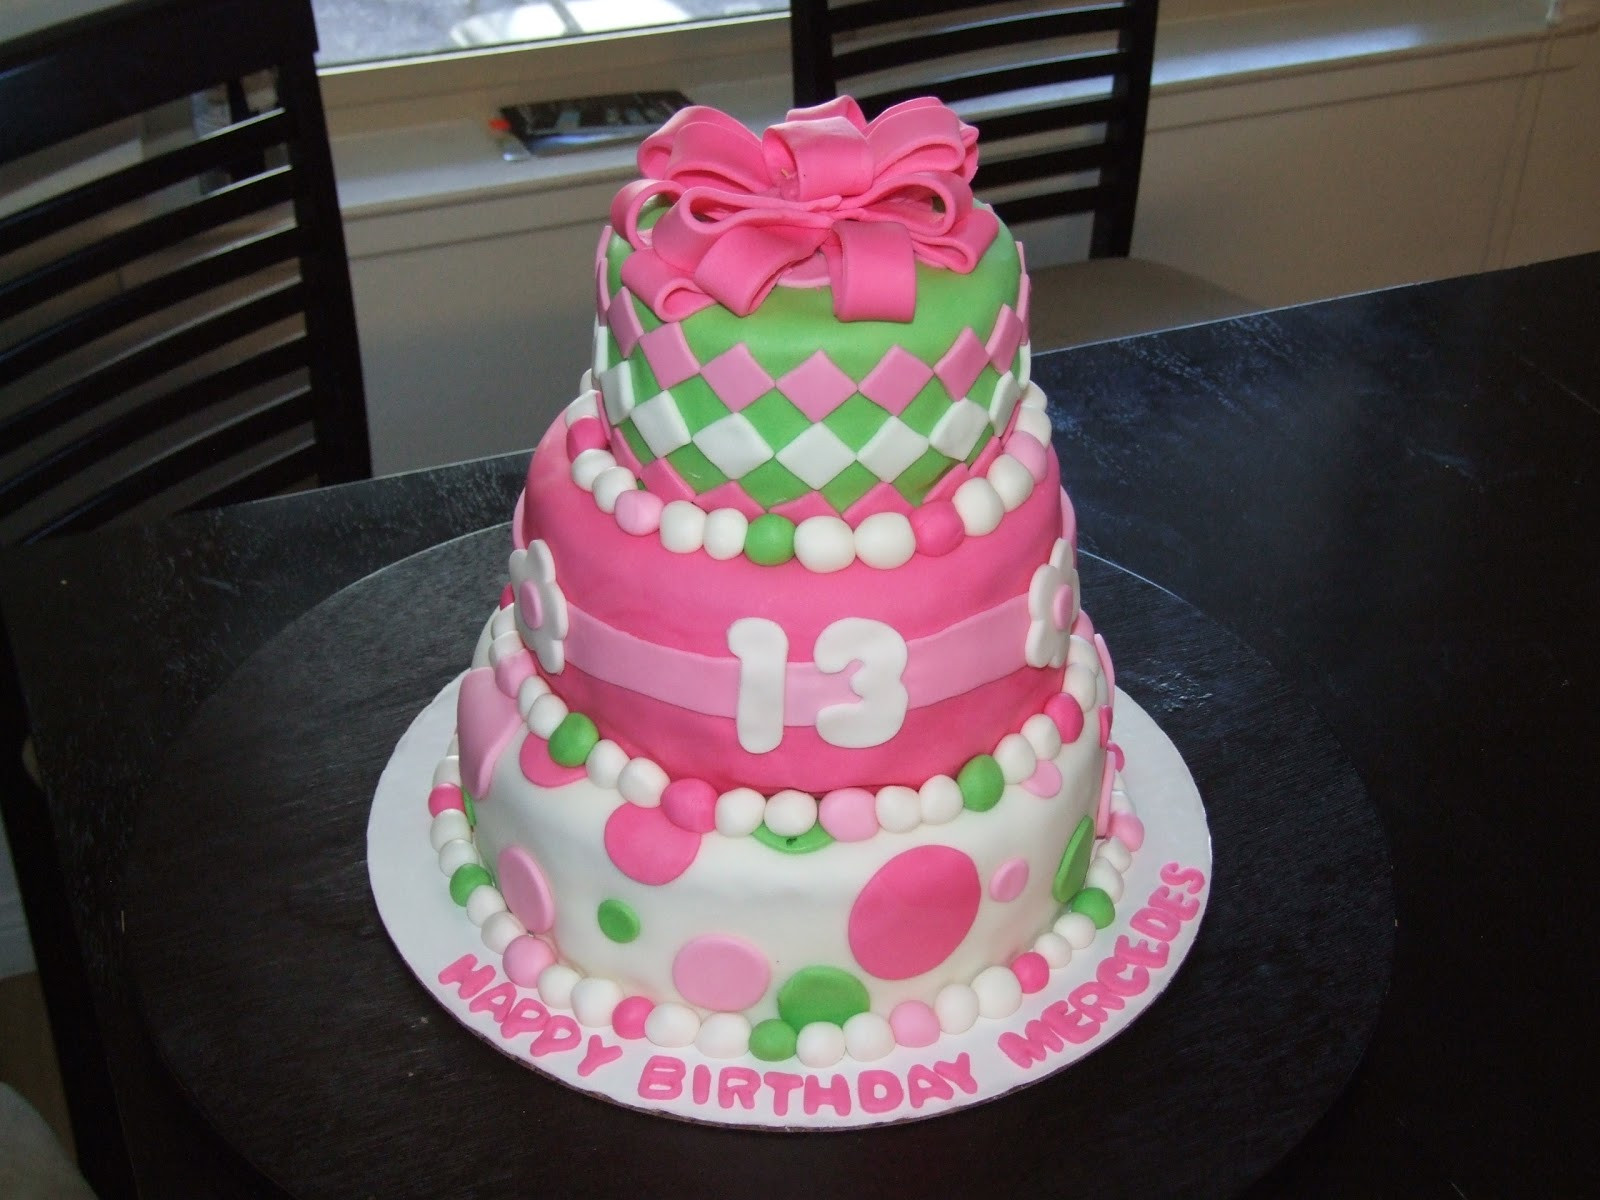 Best ideas about 13 Birthday Cake . Save or Pin Three Sweet Cakes 13th Birthday Cake Now.